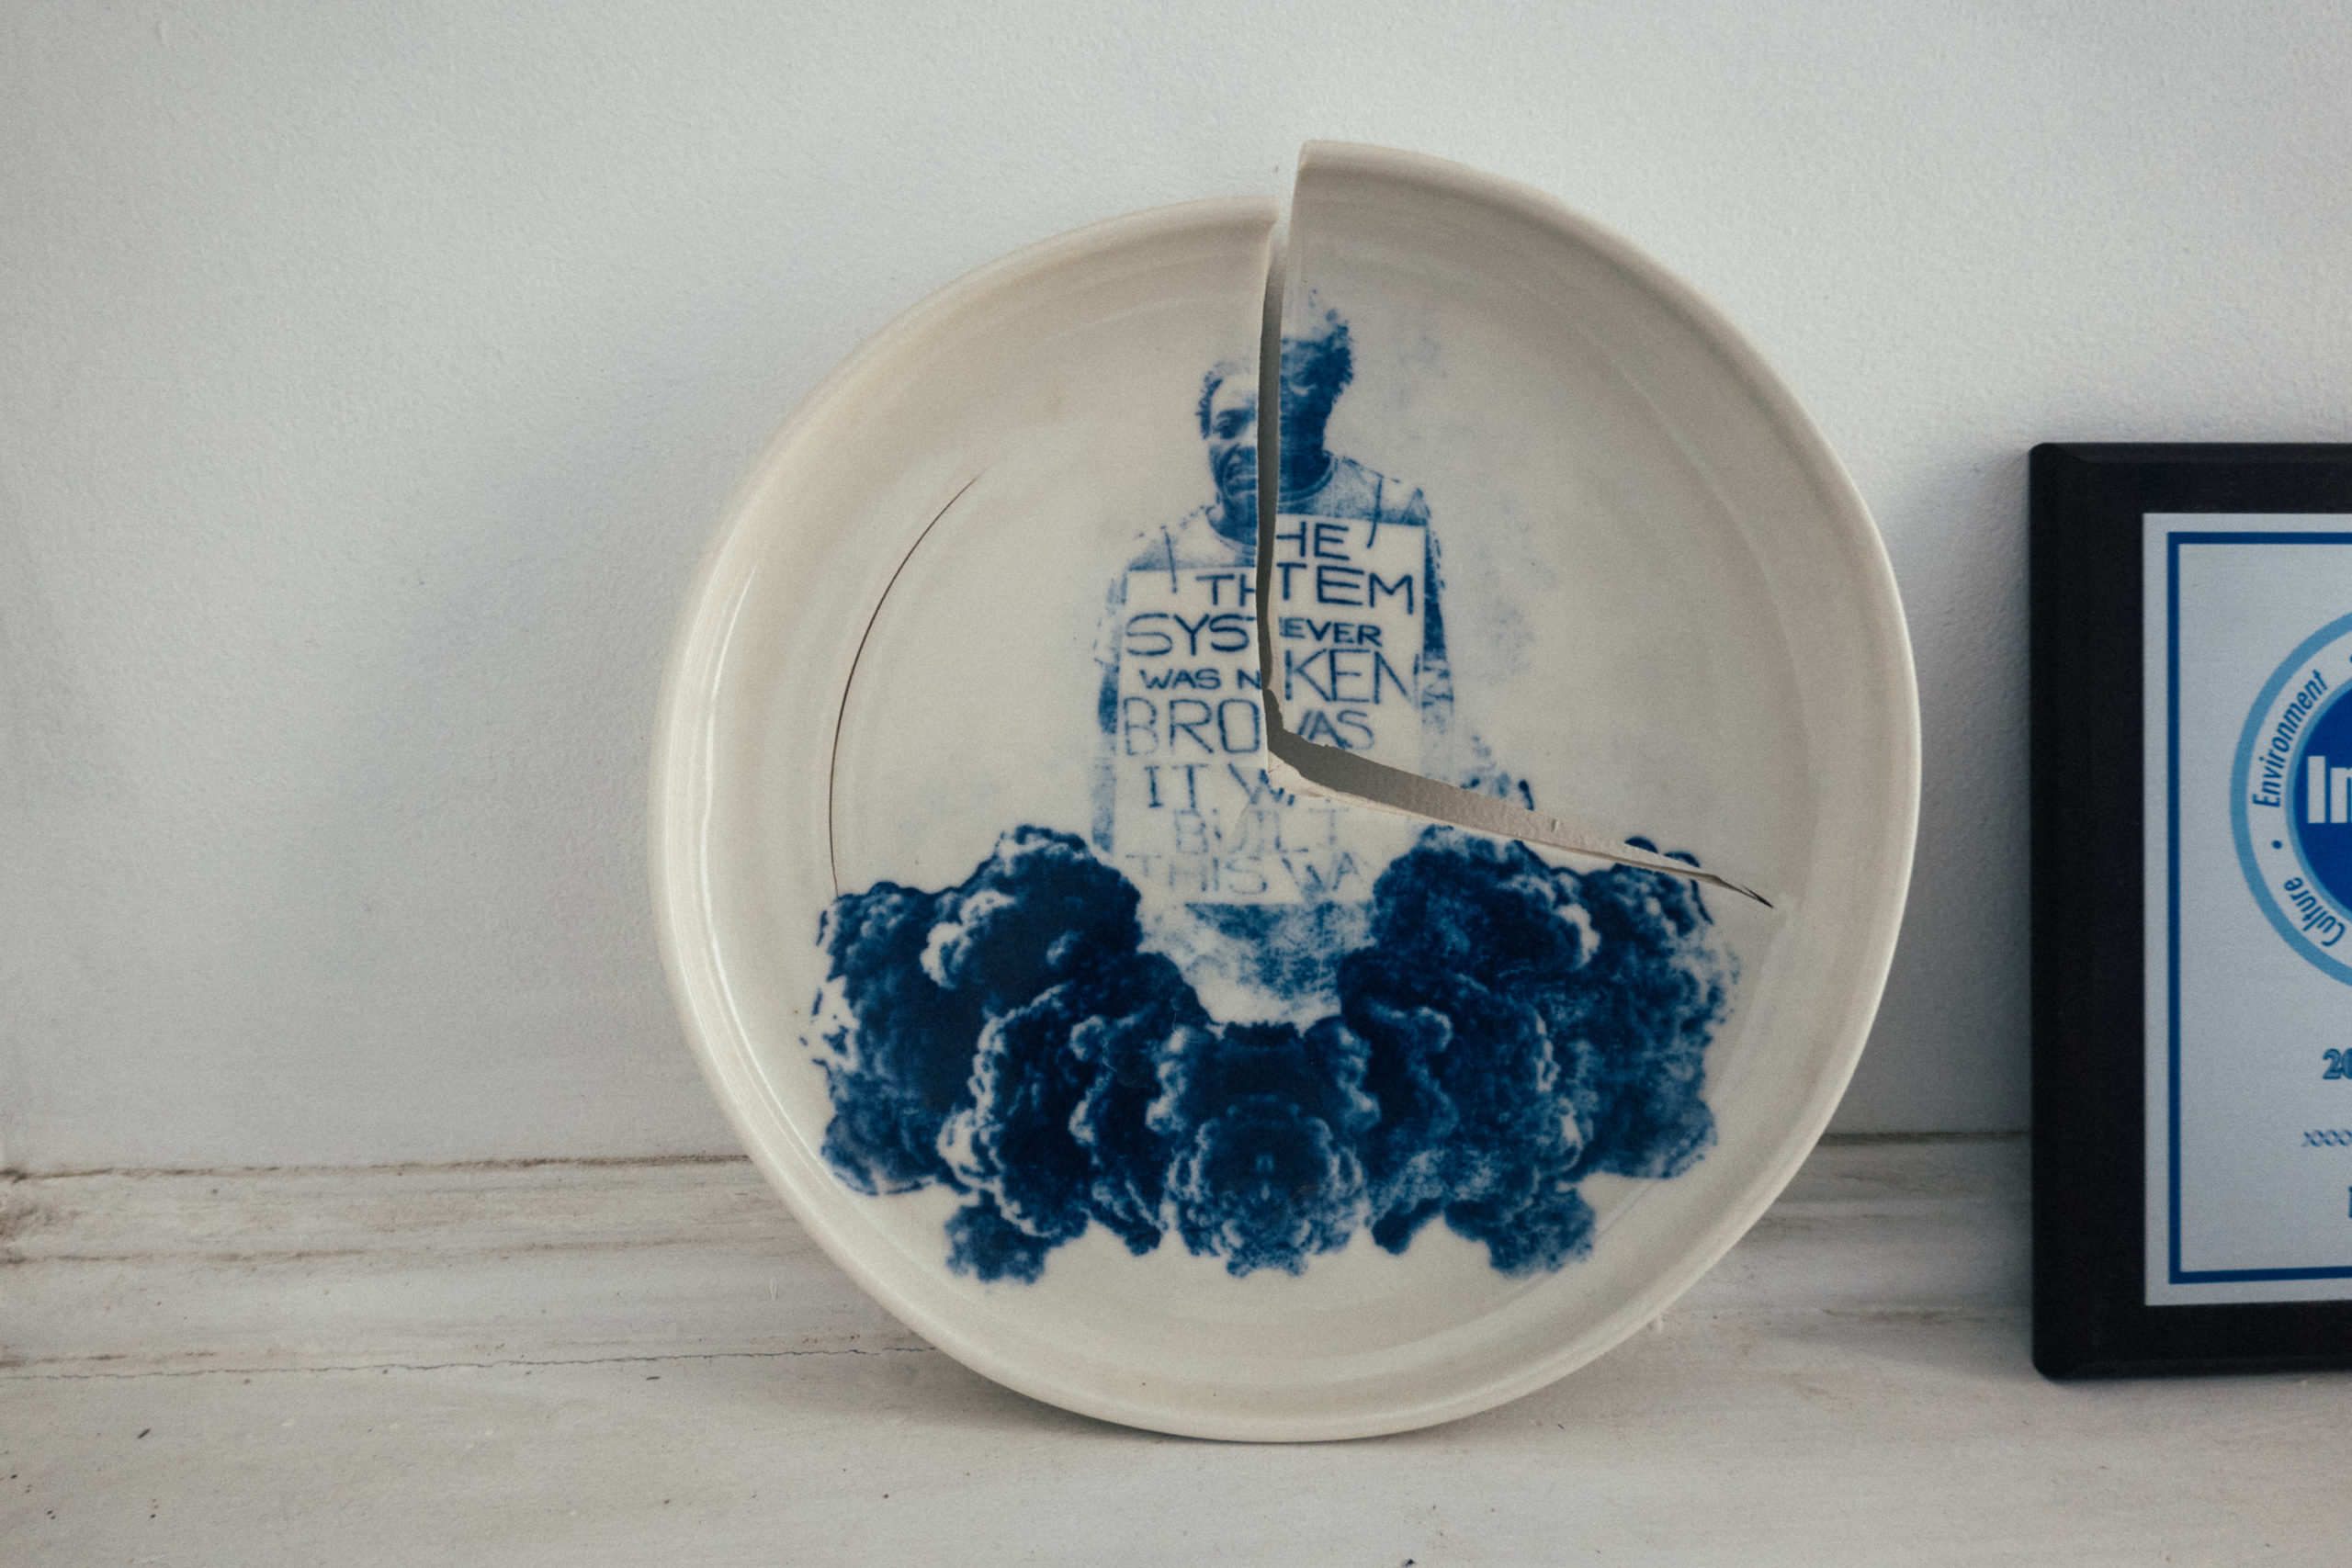 A broken plate with a screenprinted design in blue ink